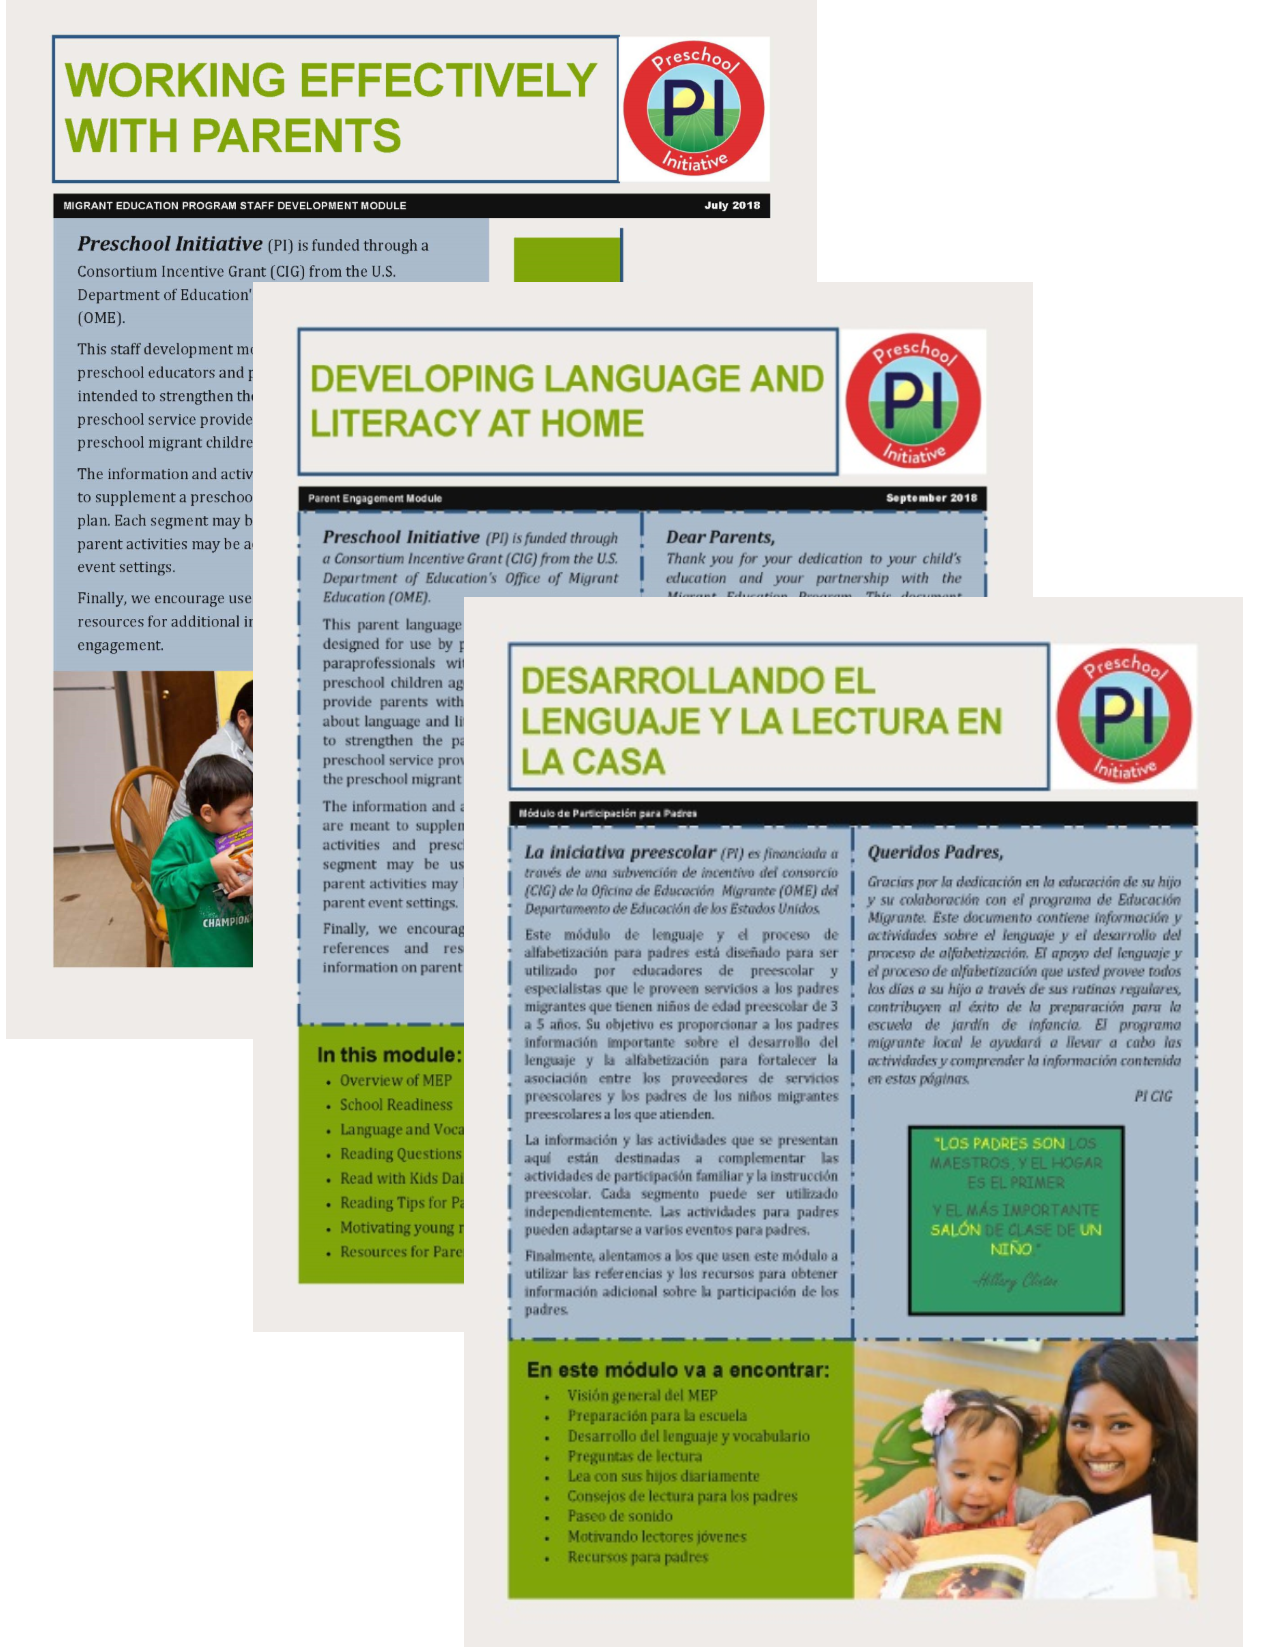 PI developed materials on Parent Engagement in English & Spanish -